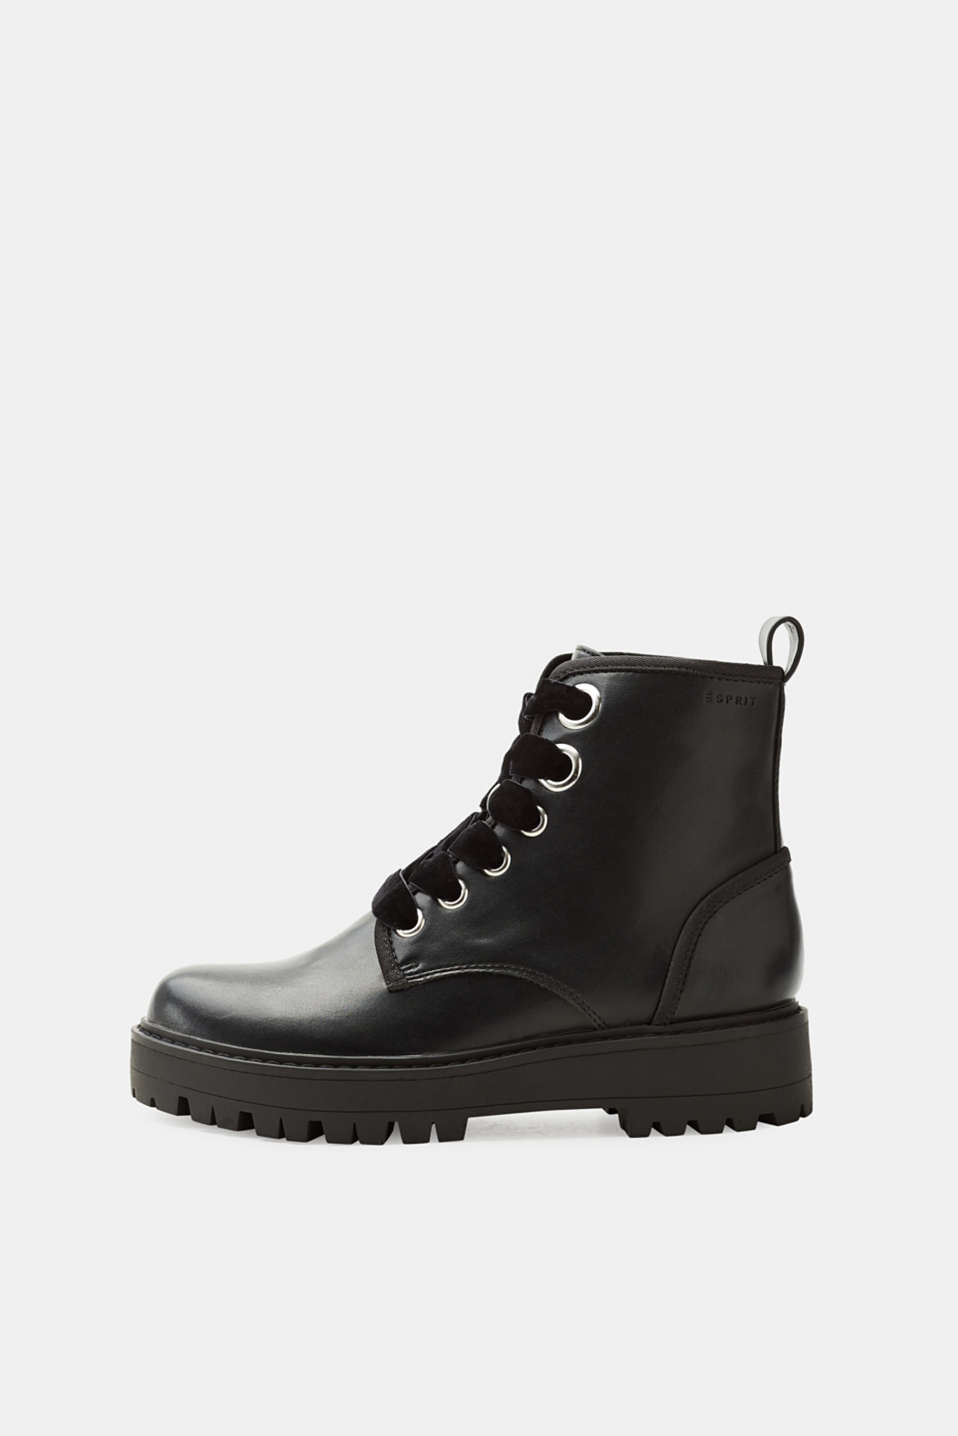 Esprit - Faux leather boots with velvet laces